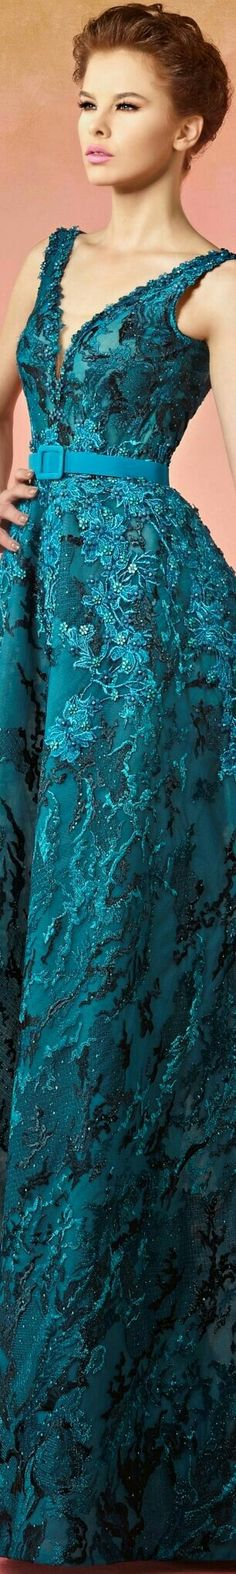 Floral Fashion, Fashion Dresses, Fashion Design, Blue Crush, Shades Of Teal, Evening Gowns, Ball Gowns, Turquoise, Formal Dresses